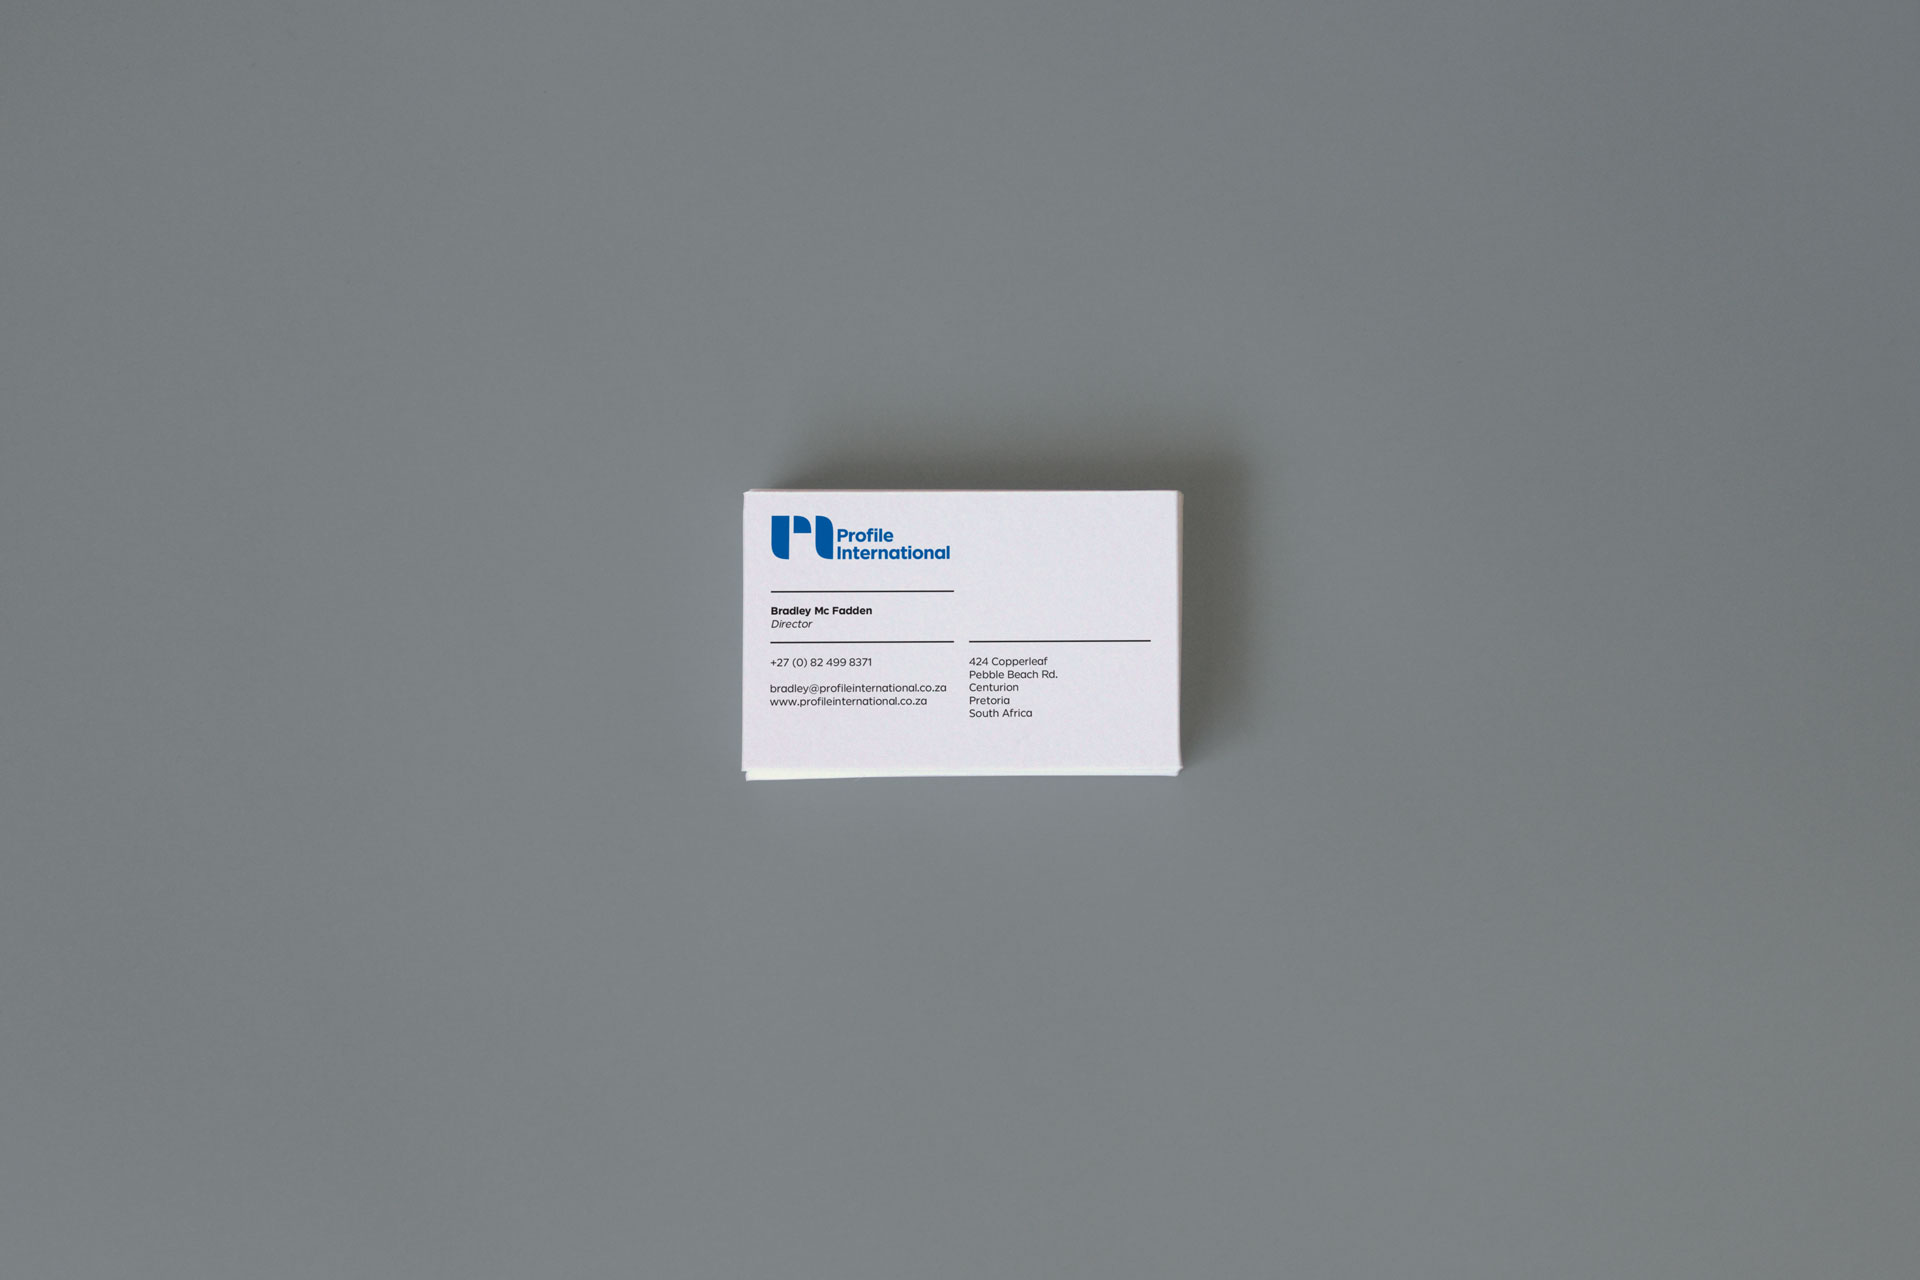 hh_profile-international_business-cards